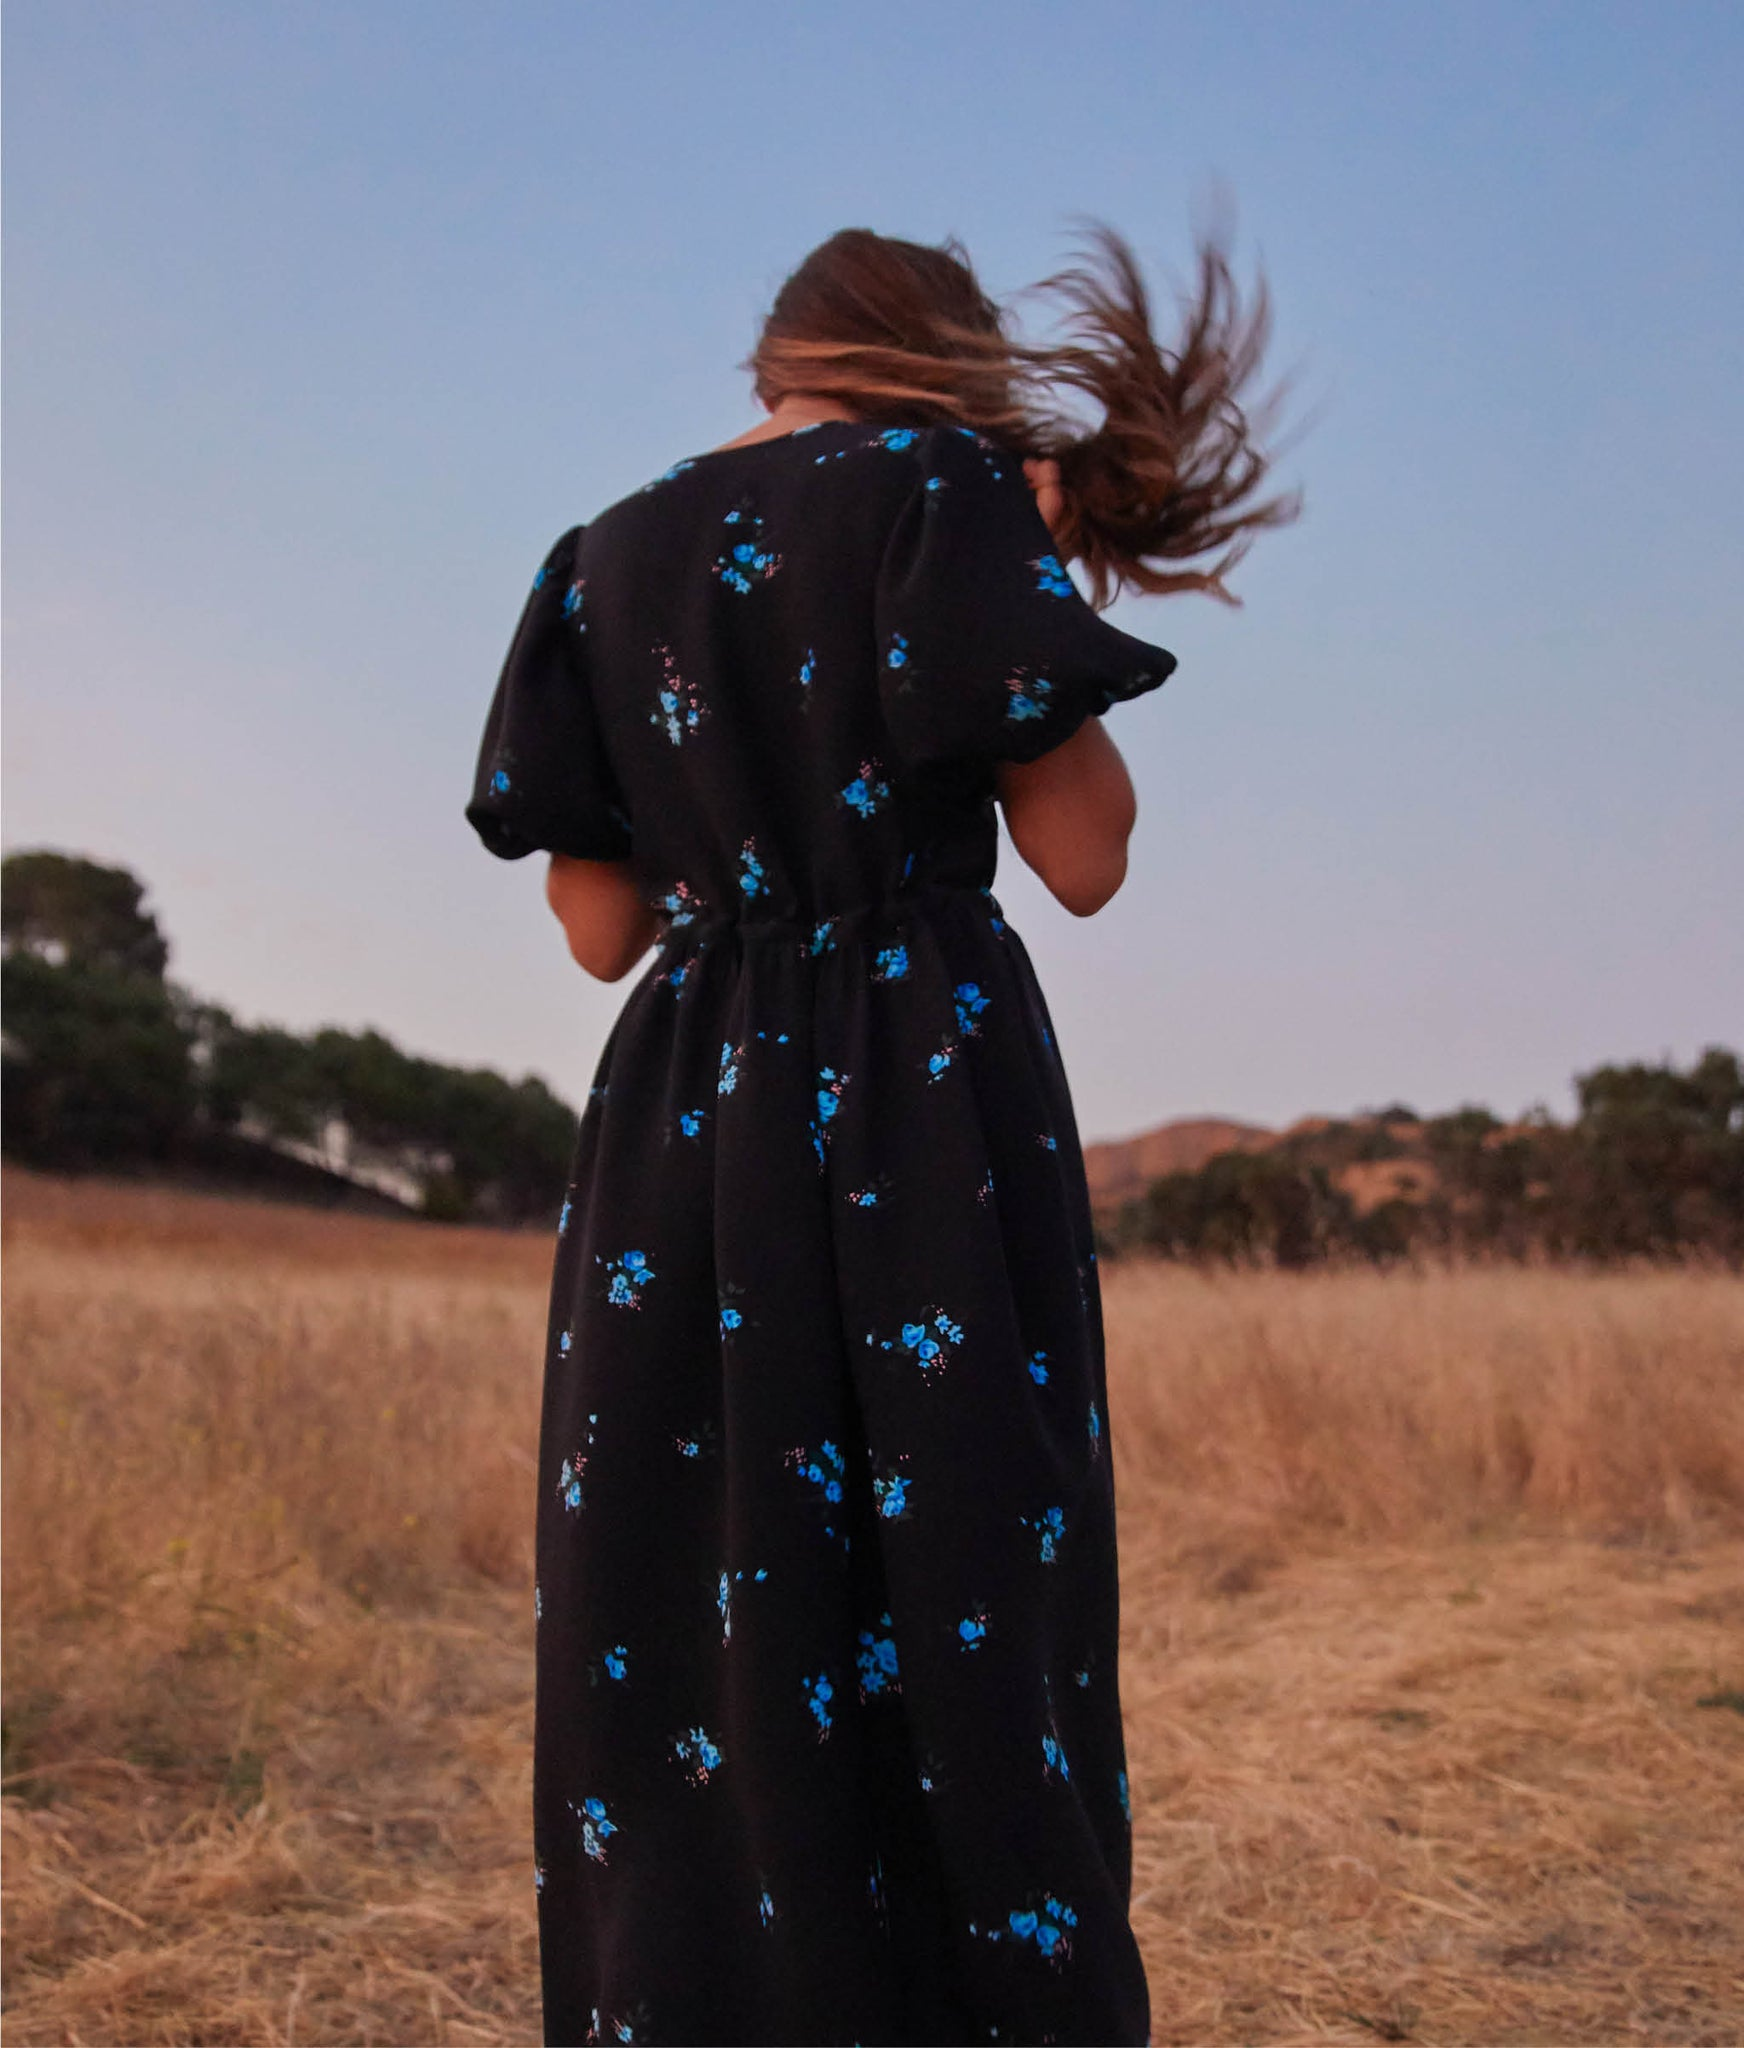 The Dahlia Dress | Petit Bleu (1-of-a-kind!)